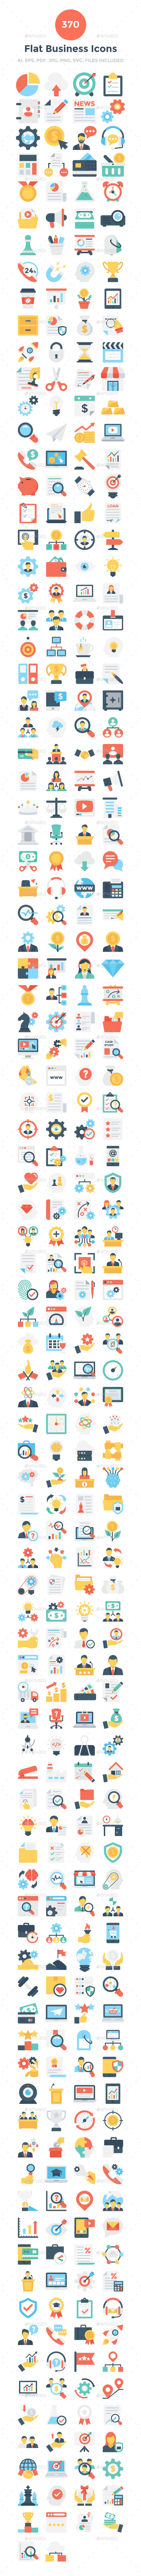 370 Flat Business Icons - Icons